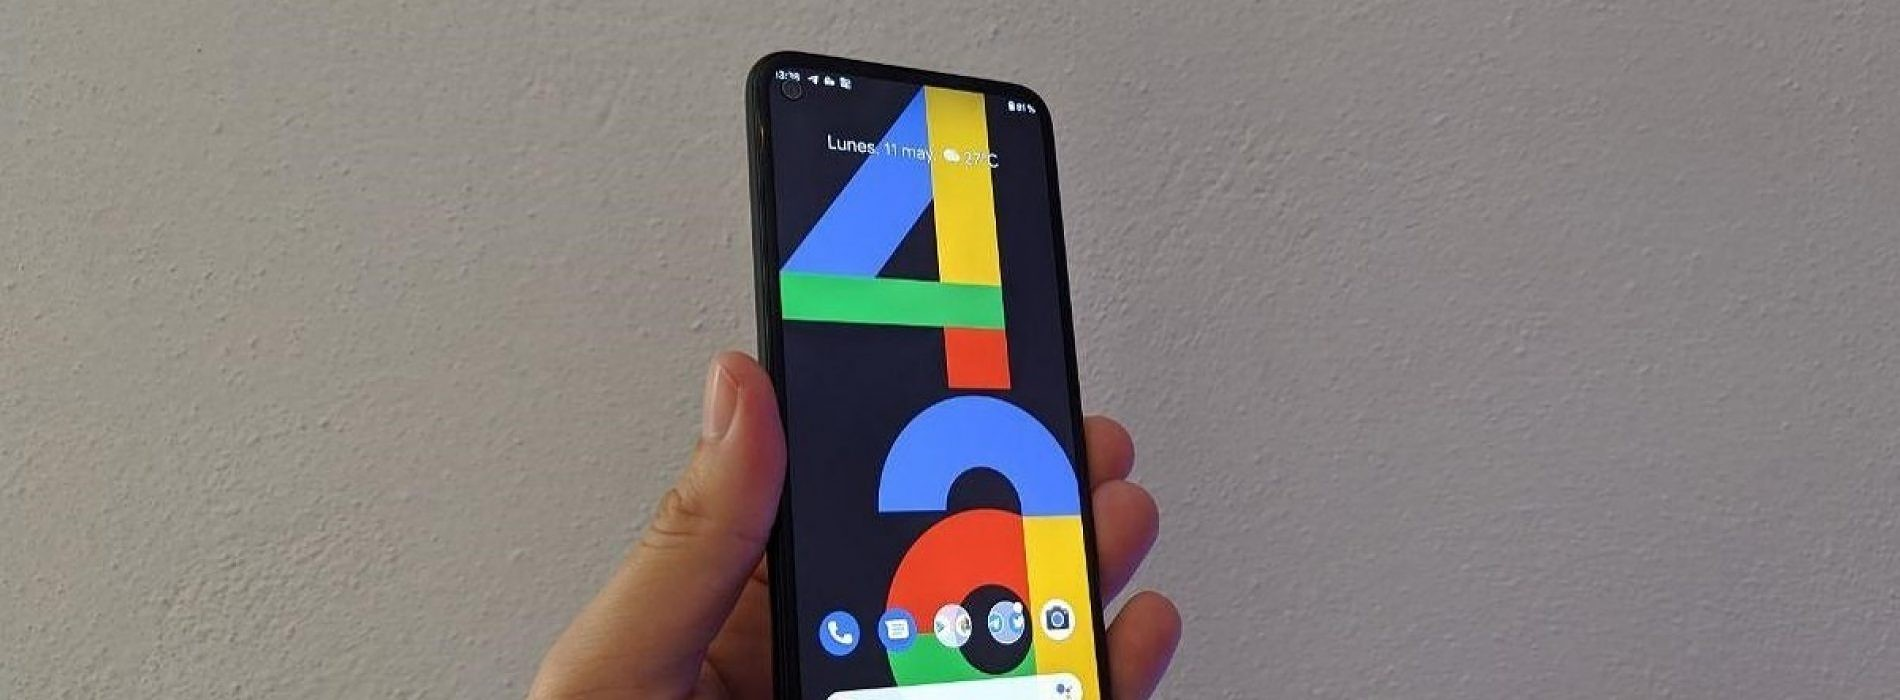 Download The Google Pixel 4a Wallpapers In Full Hd 2340 X 1080